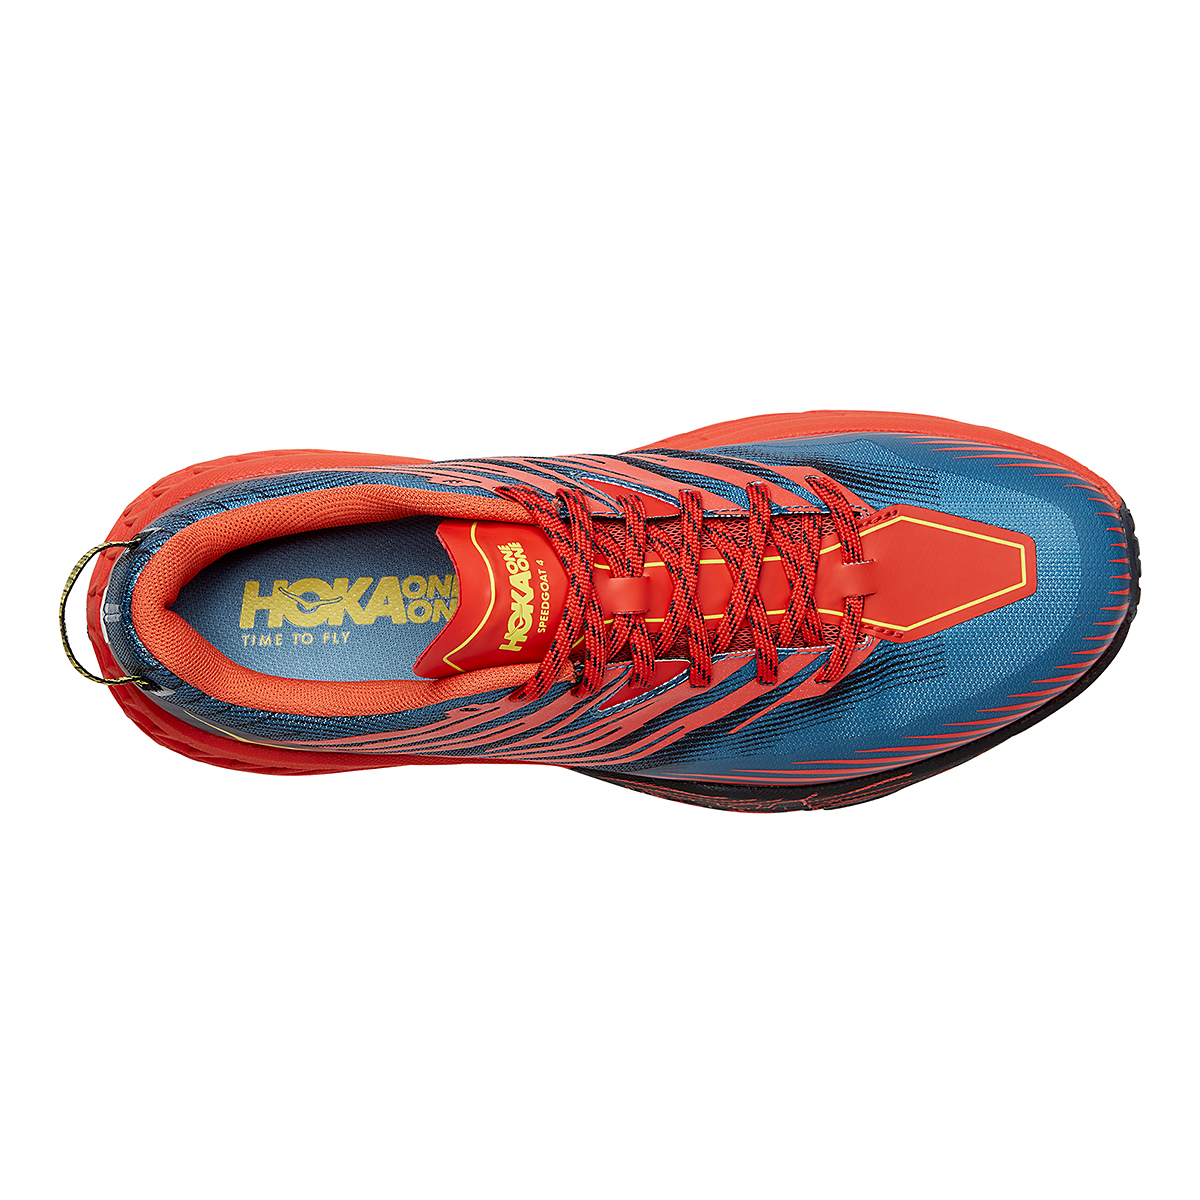 Men's Hoka One One Speedgoat 4 Trail Running Shoe - Color: Fiesta/Provincial Blue - Size: 7 - Width: Regular, Fiesta/Provincial Blue, large, image 3